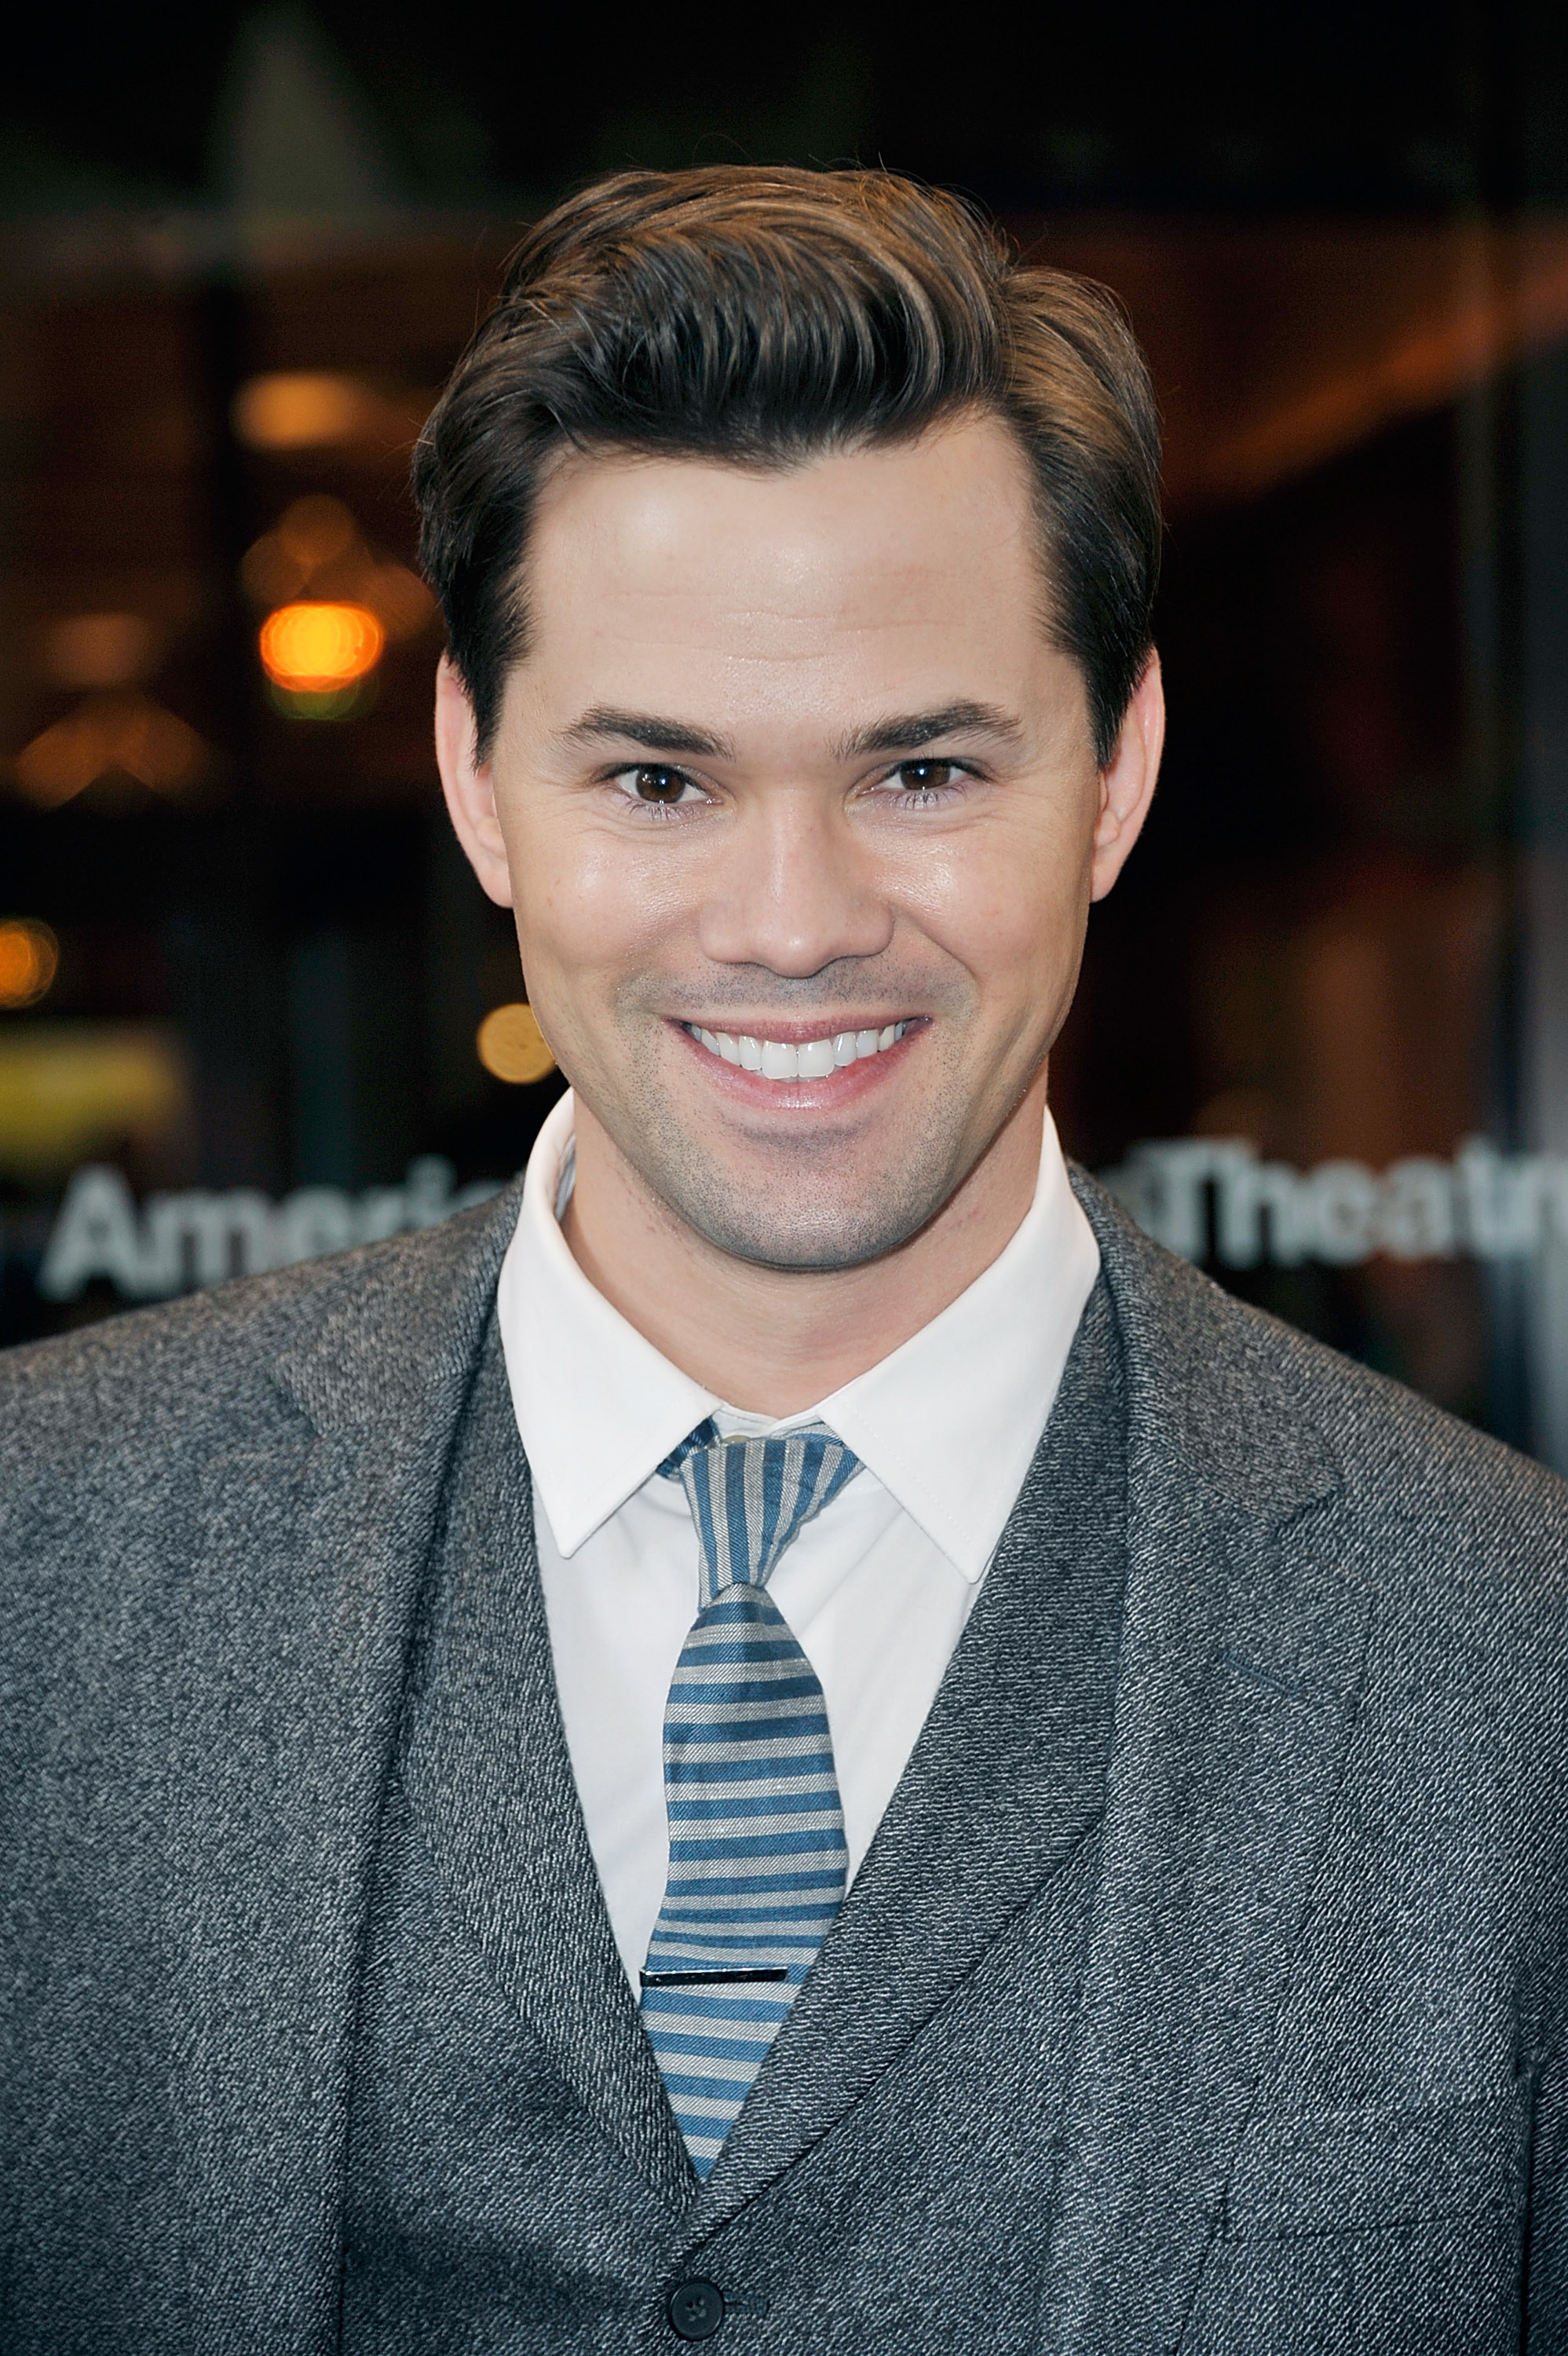 Andrew Rannells attends the  Violet  Opening Night at American Airlines Theatre on April 20, 2014 in New York City.